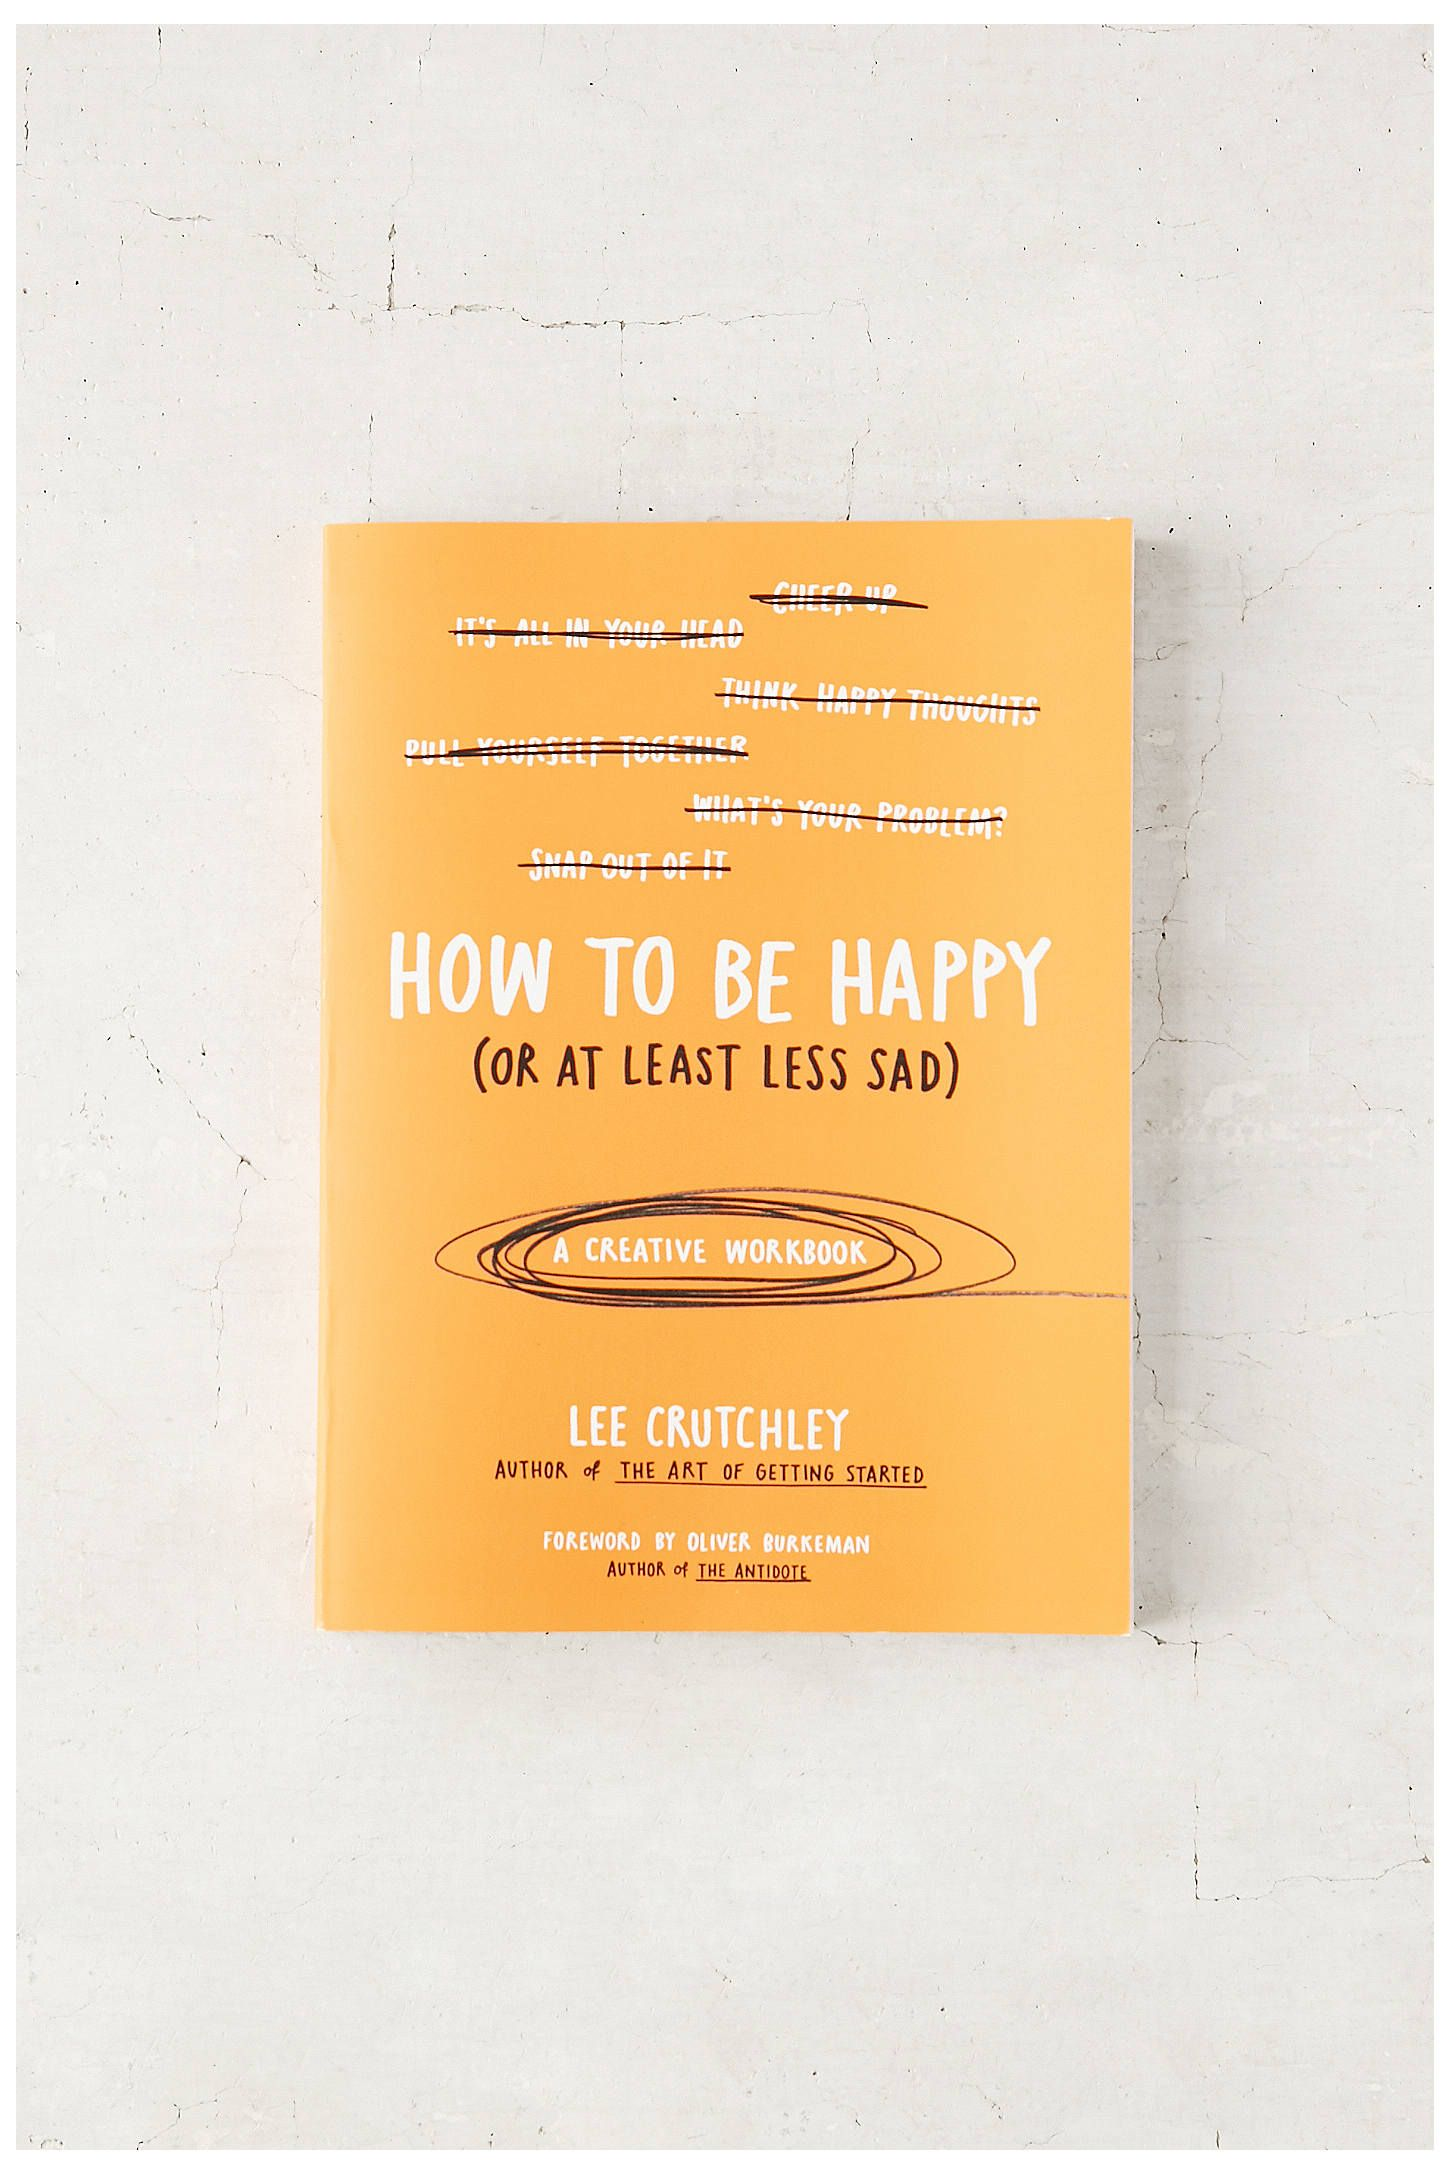 Shop the How To Be Happy (Or At Least Less Sad): A Creative Workbook By Lee Crutchley and more Urban Outfitters at Urban Outfitters. Read customer reviews, discover product details and more.